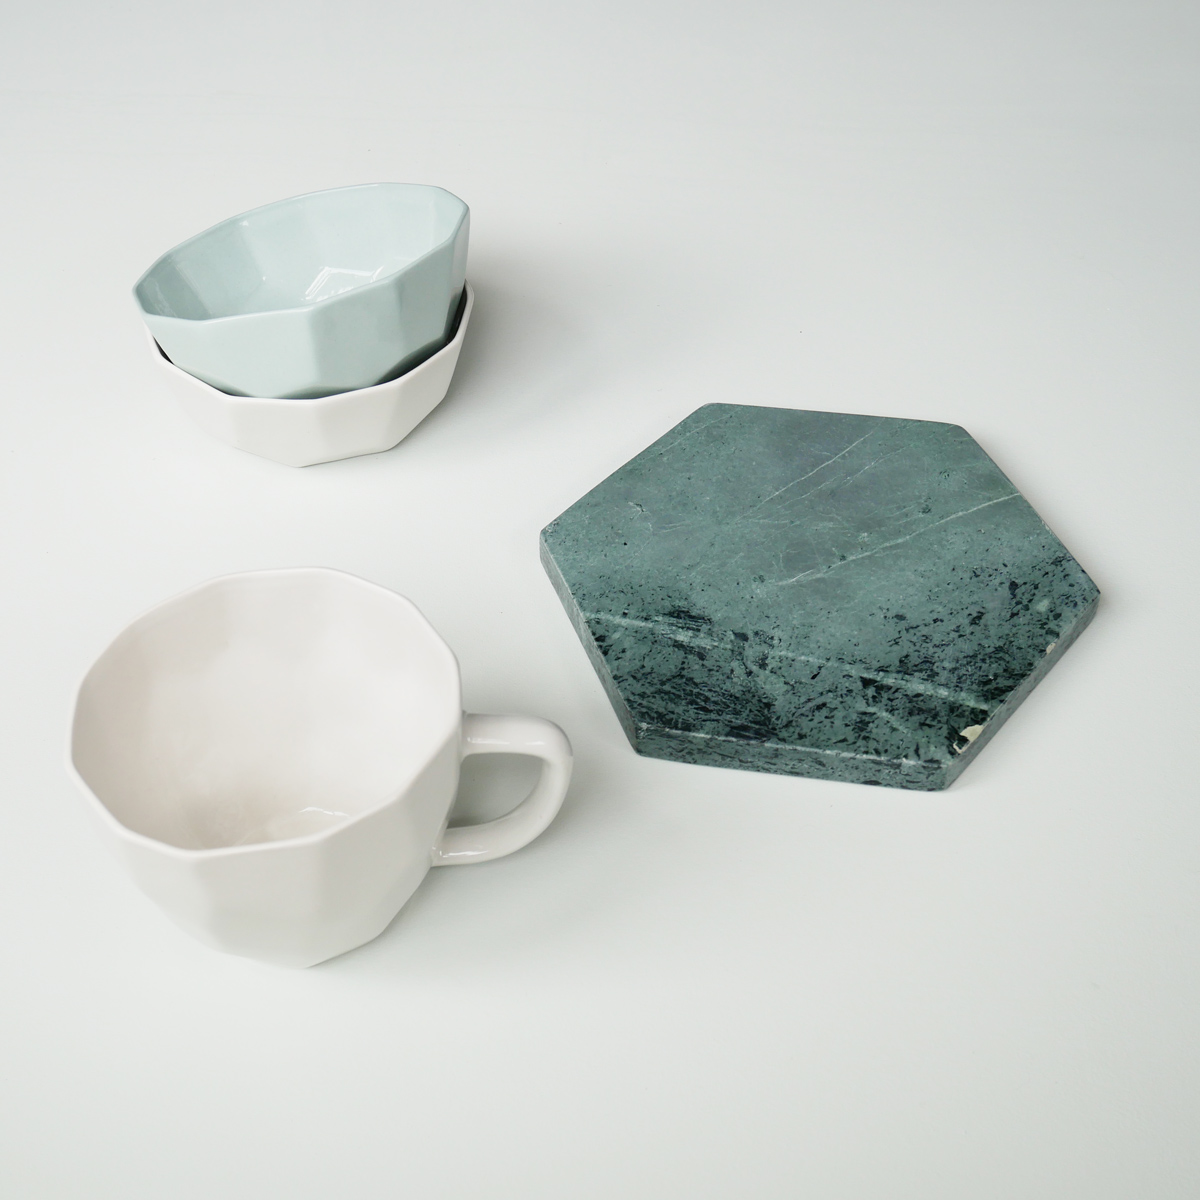 liv-interior-geometric-bowls-mint-&-white-with-green-marble-board